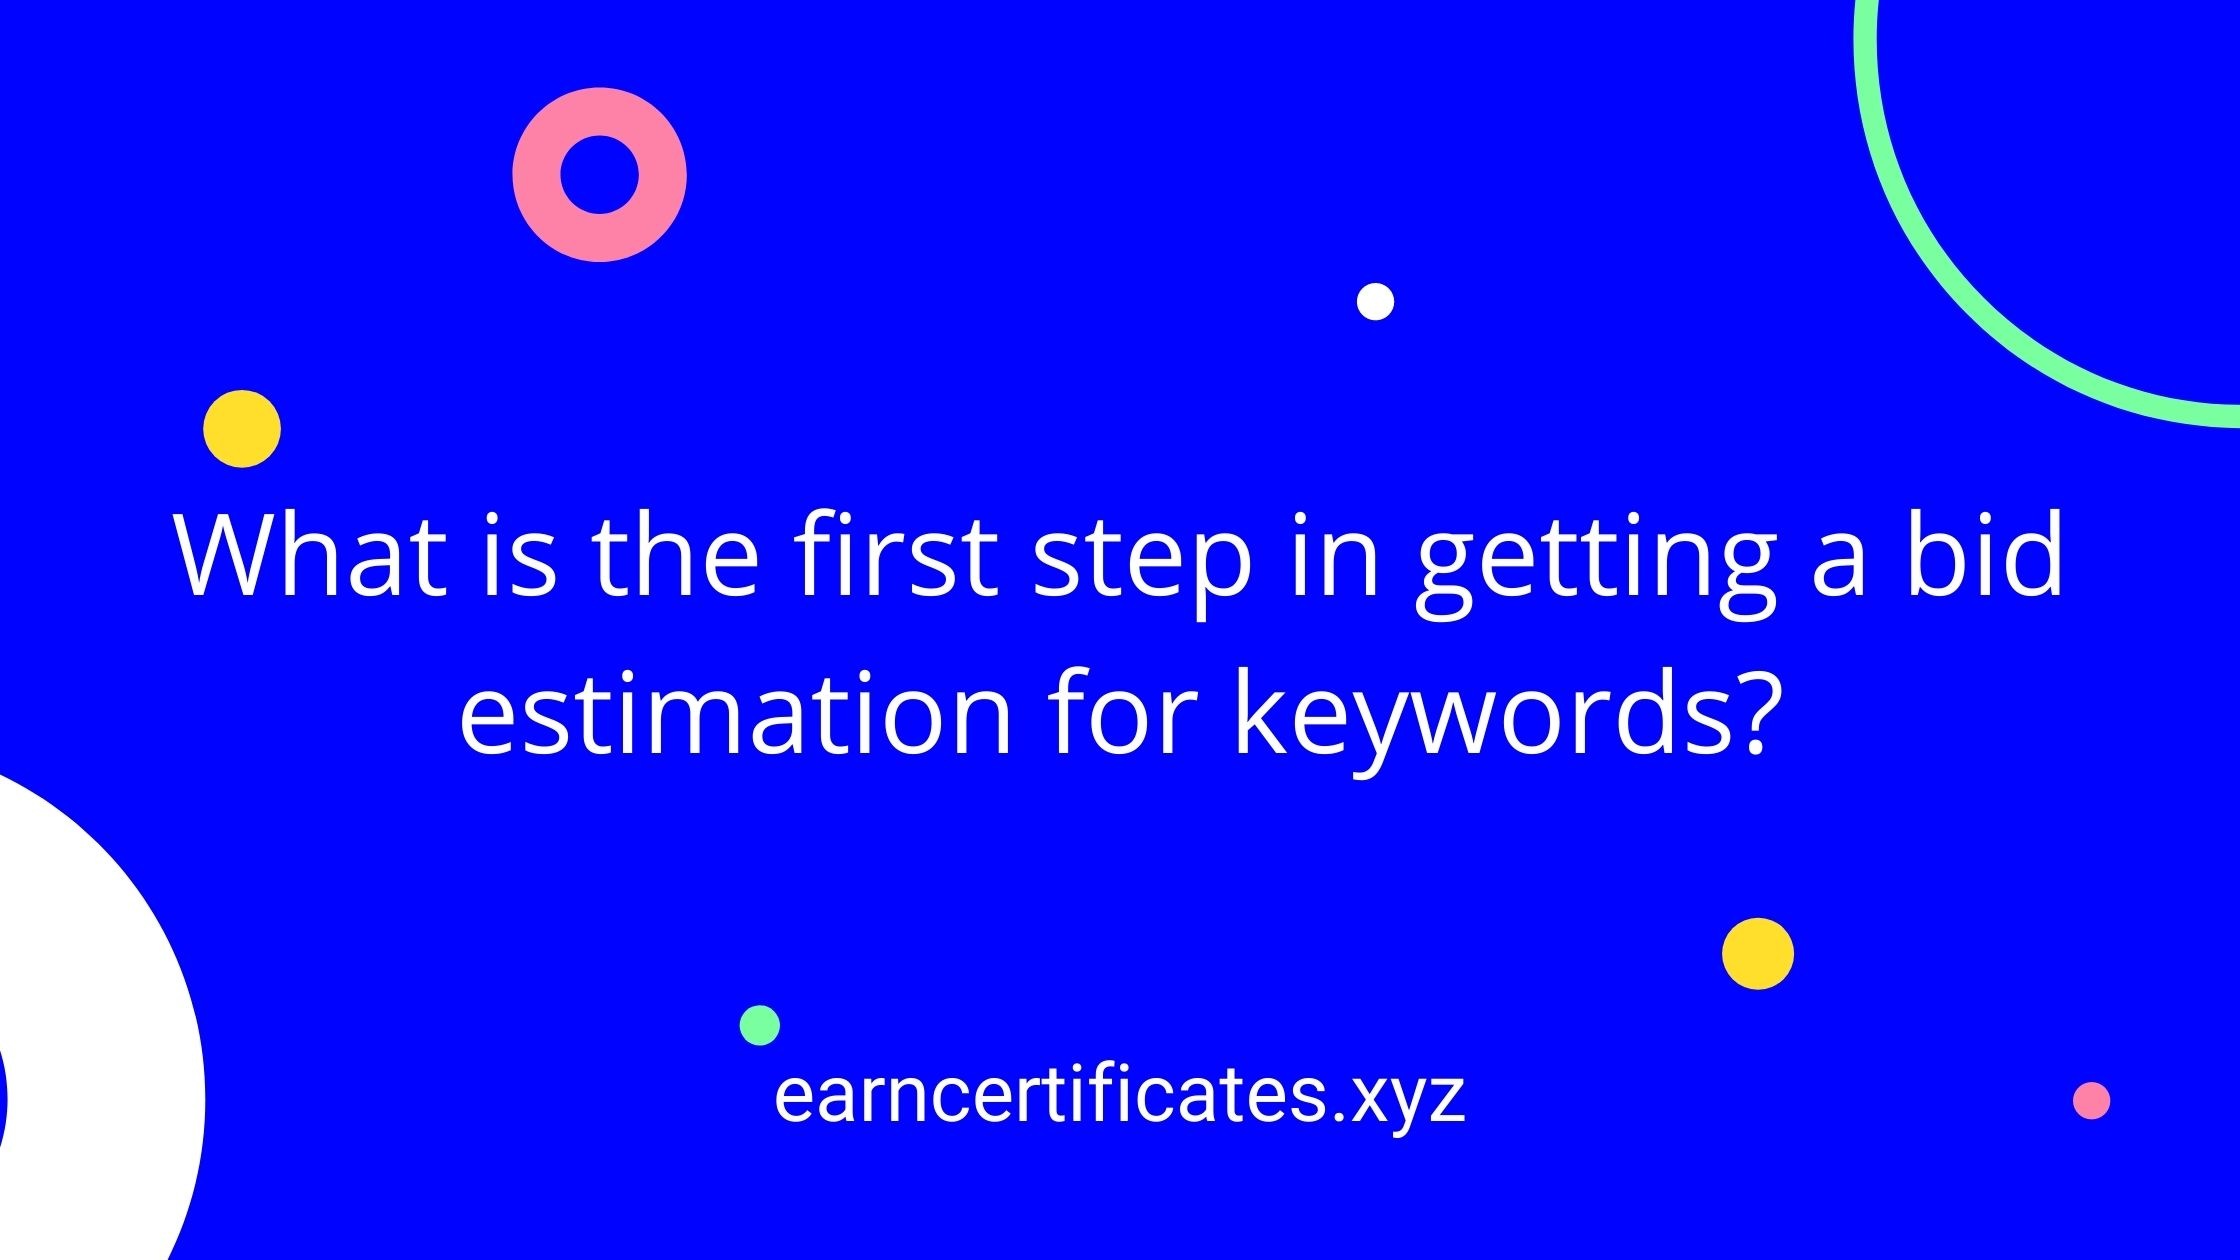 What is the first step in getting a bid estimation for keywords?